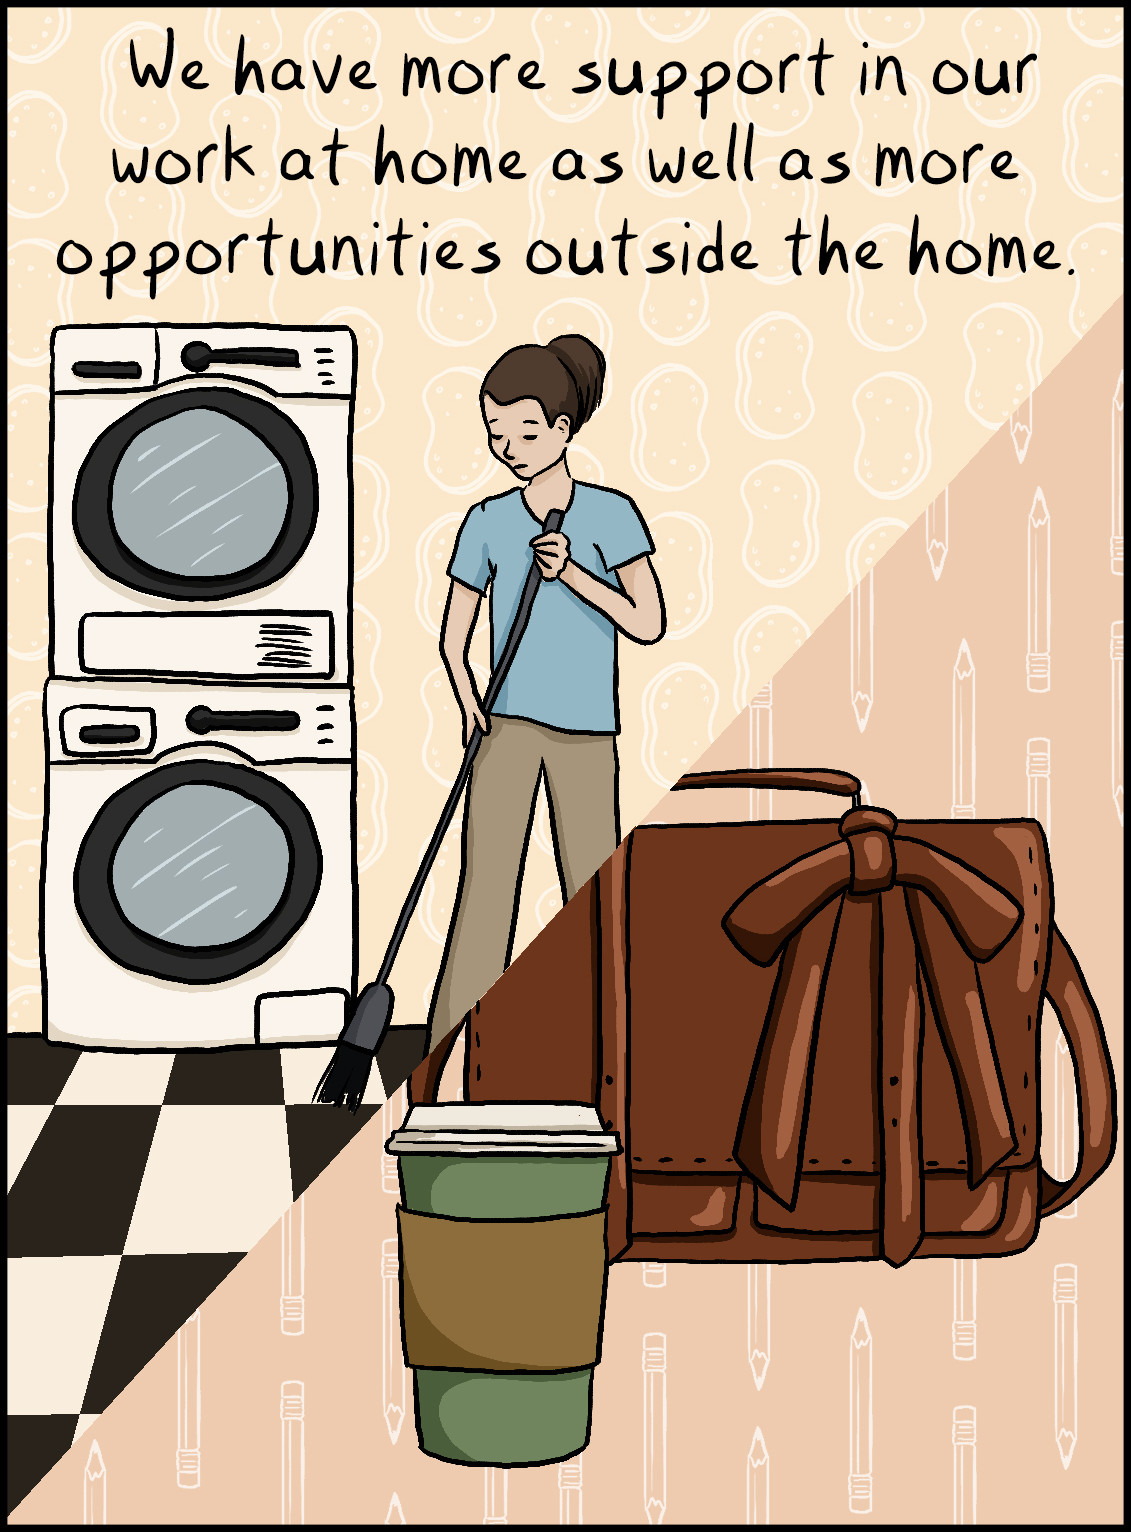 We have more support in our work at home as well as more opportunities outside the home.